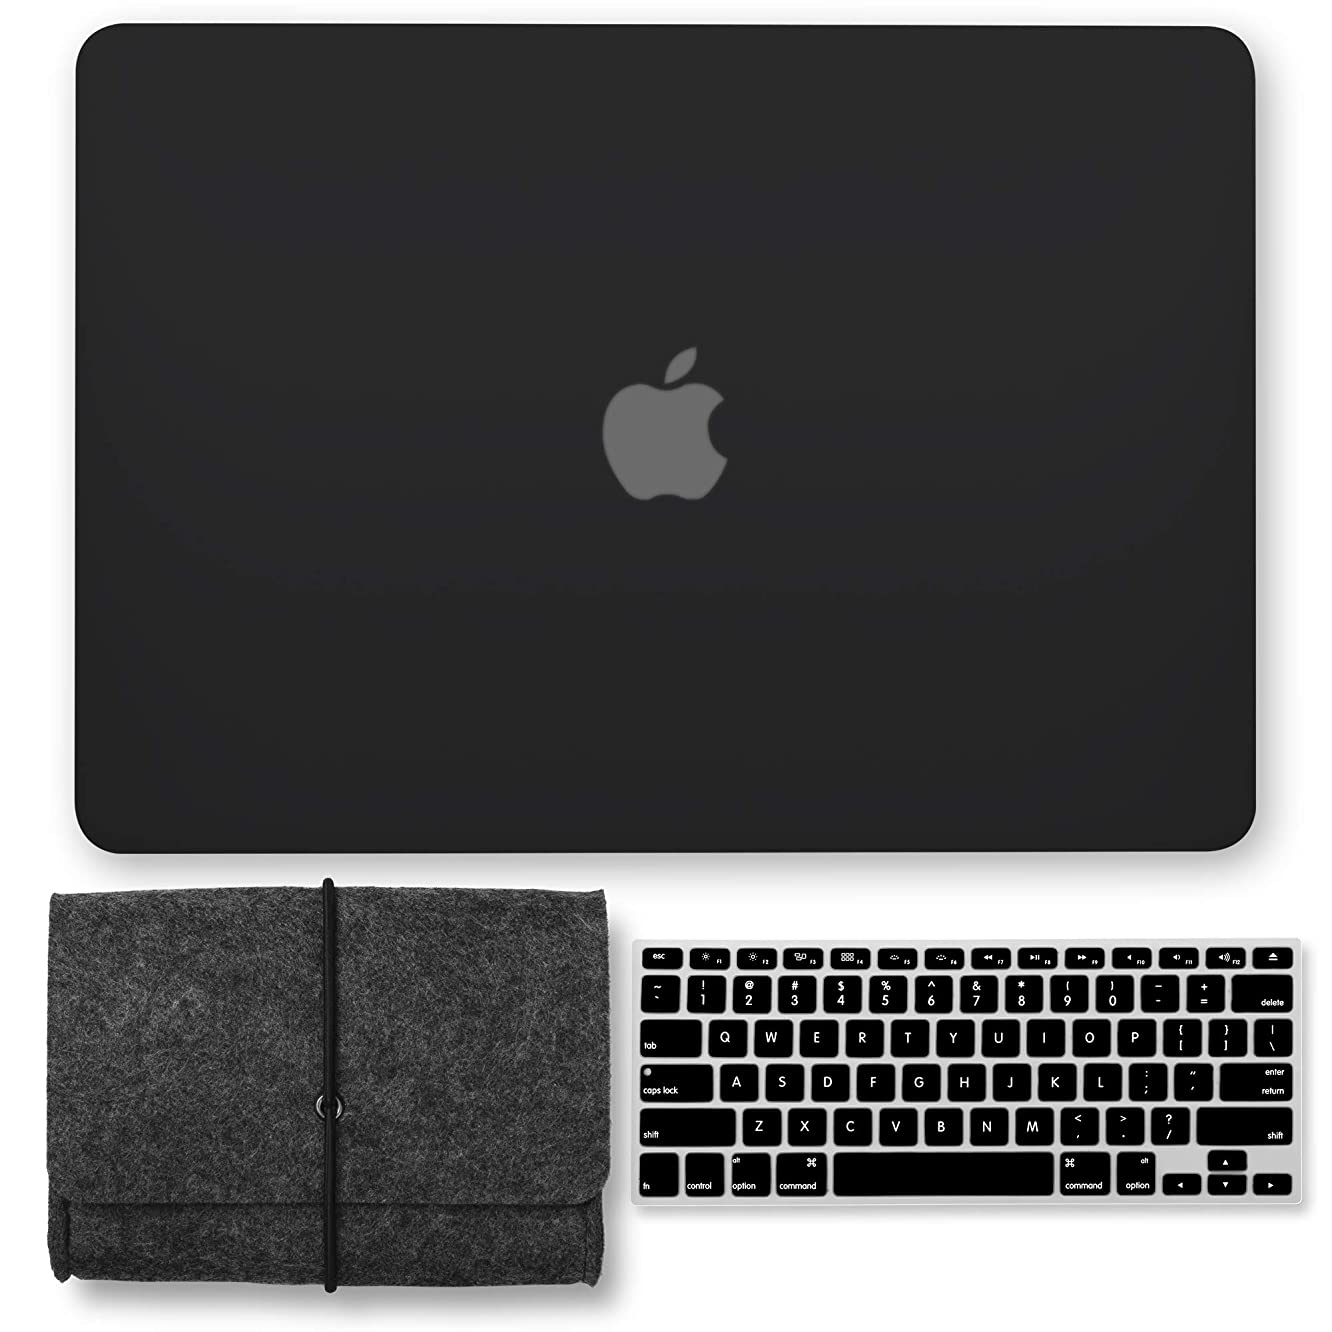 GMYLE MacBook Pro 15 Case 2018 2017 2016 Release A1990/A1707 with Touch Bar, Plastic Hard Shell & Keyboard Cover & Felt Pouch Storage Bag Compatible Newest Mac Pro 15 Inch, Black